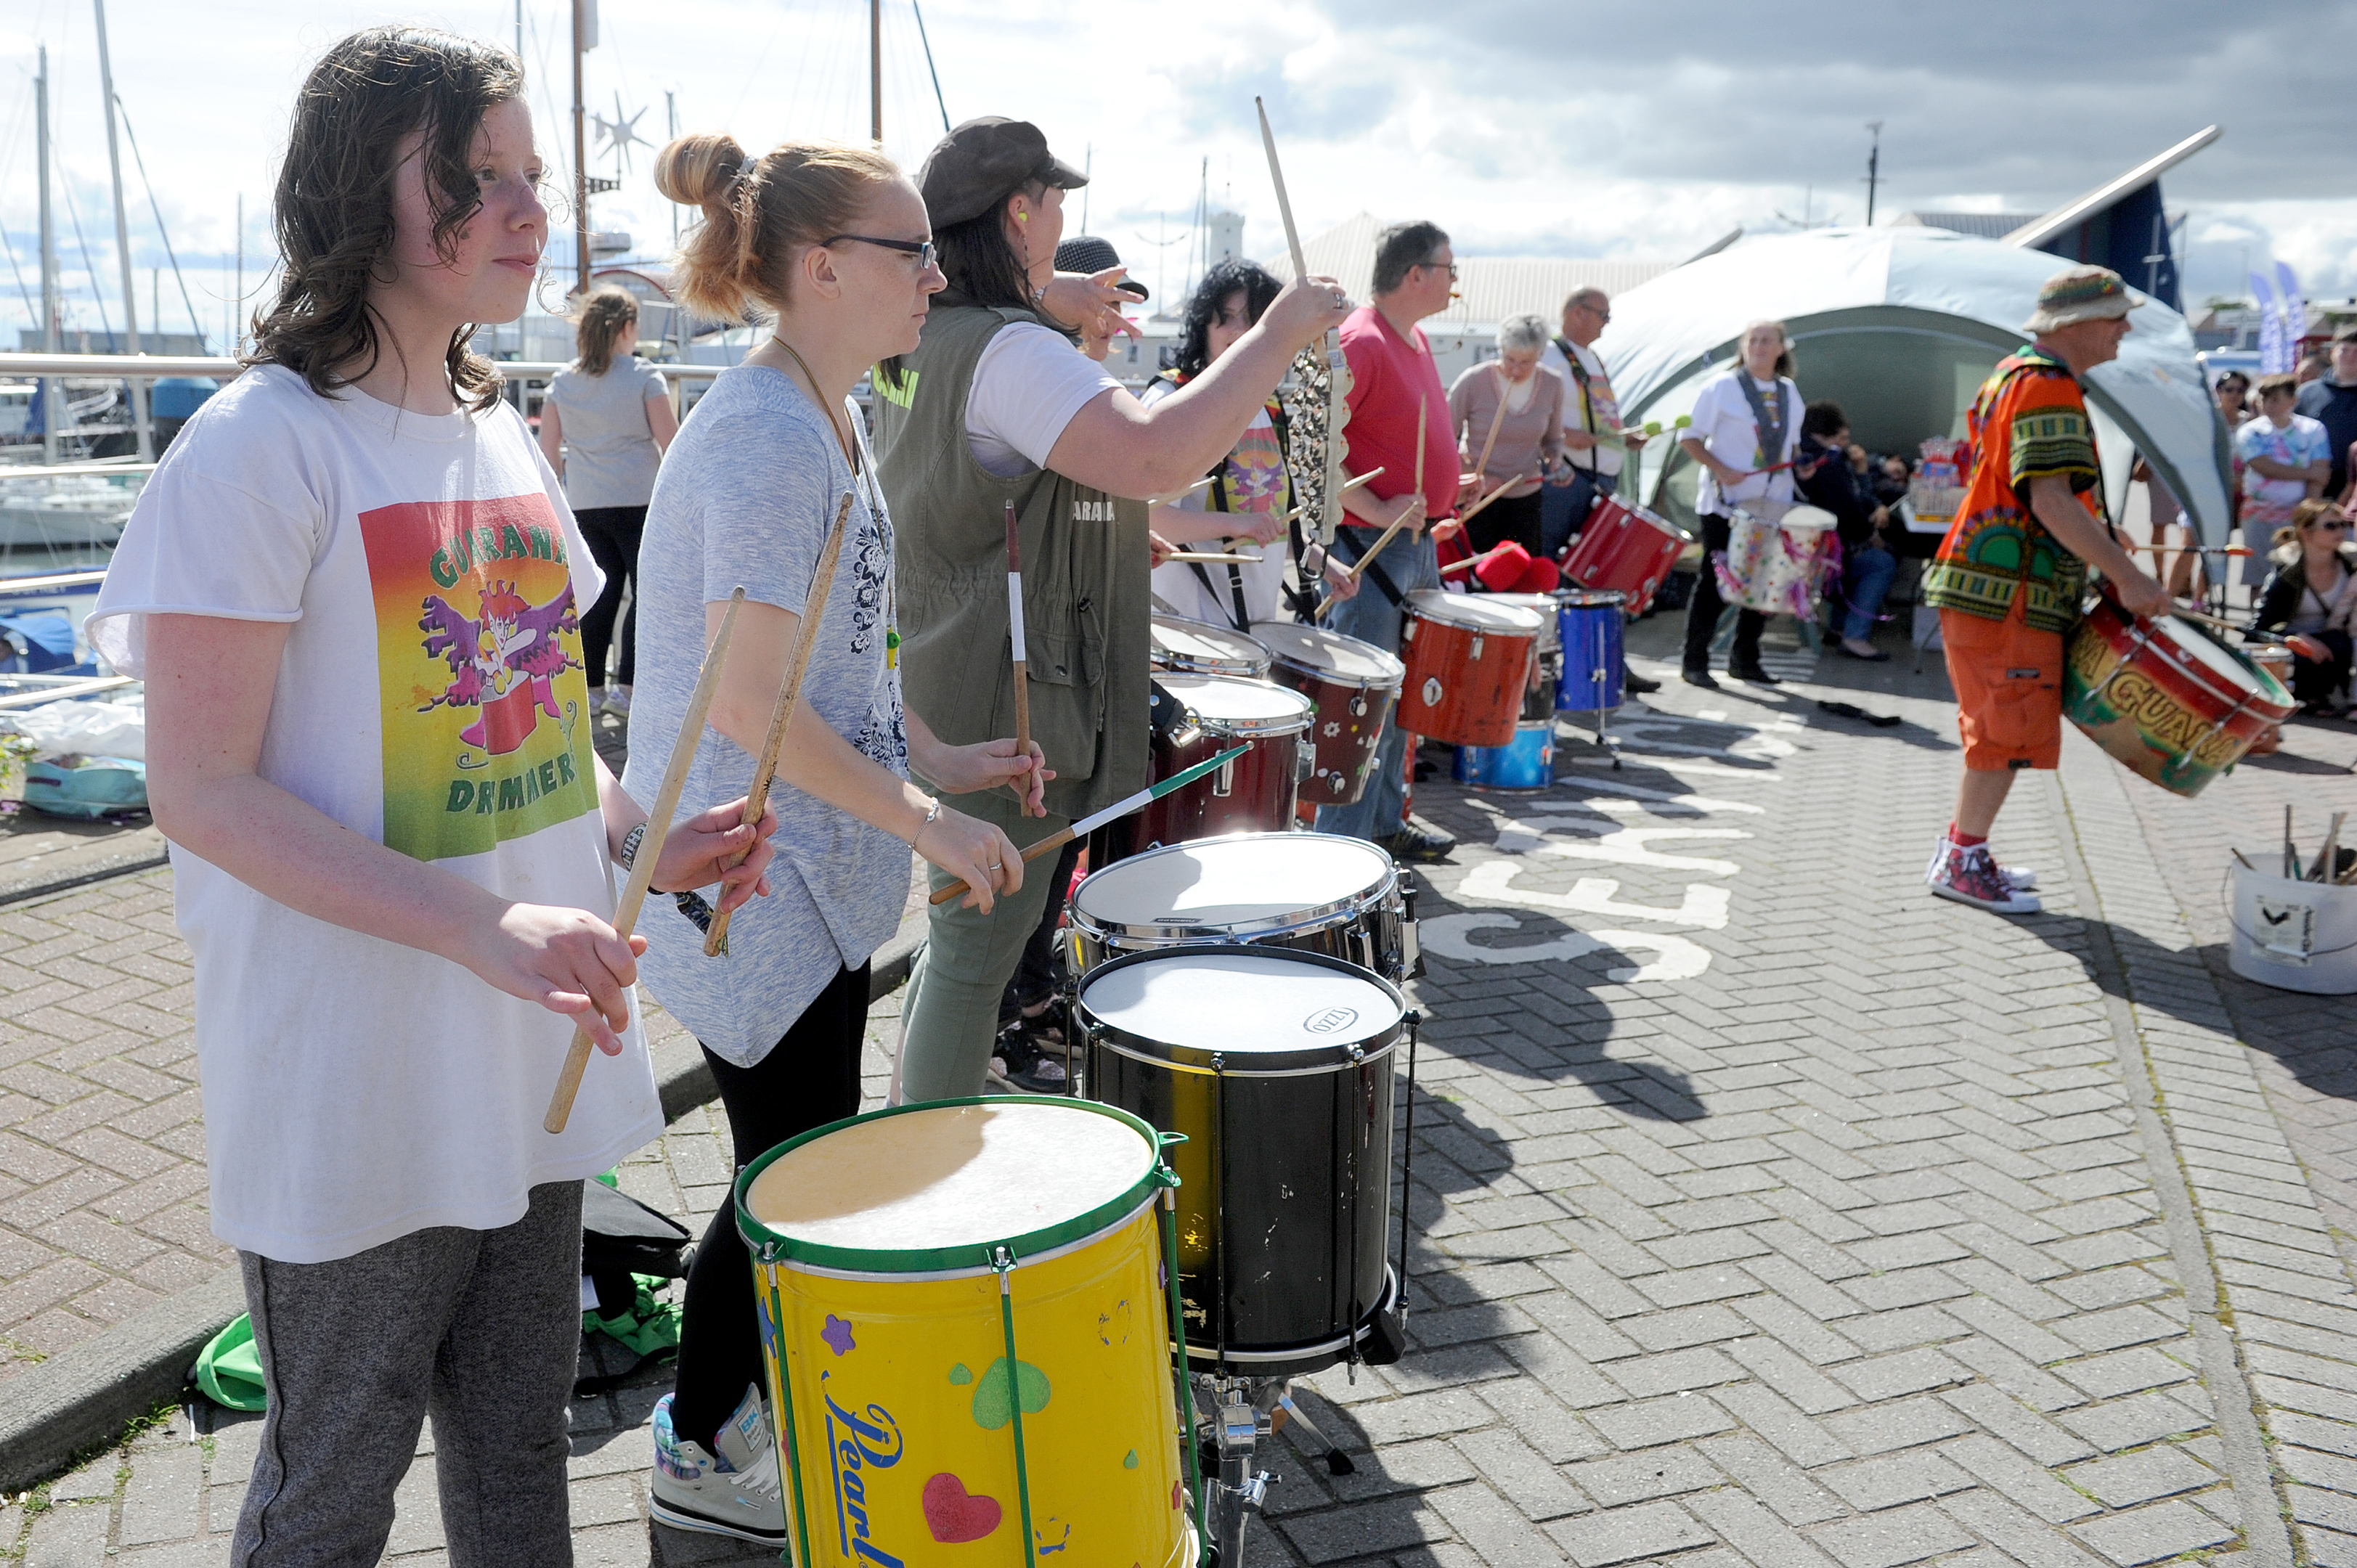 The Guarana Drummers provided some of the entertainment at Arbroath Harbour in 2016